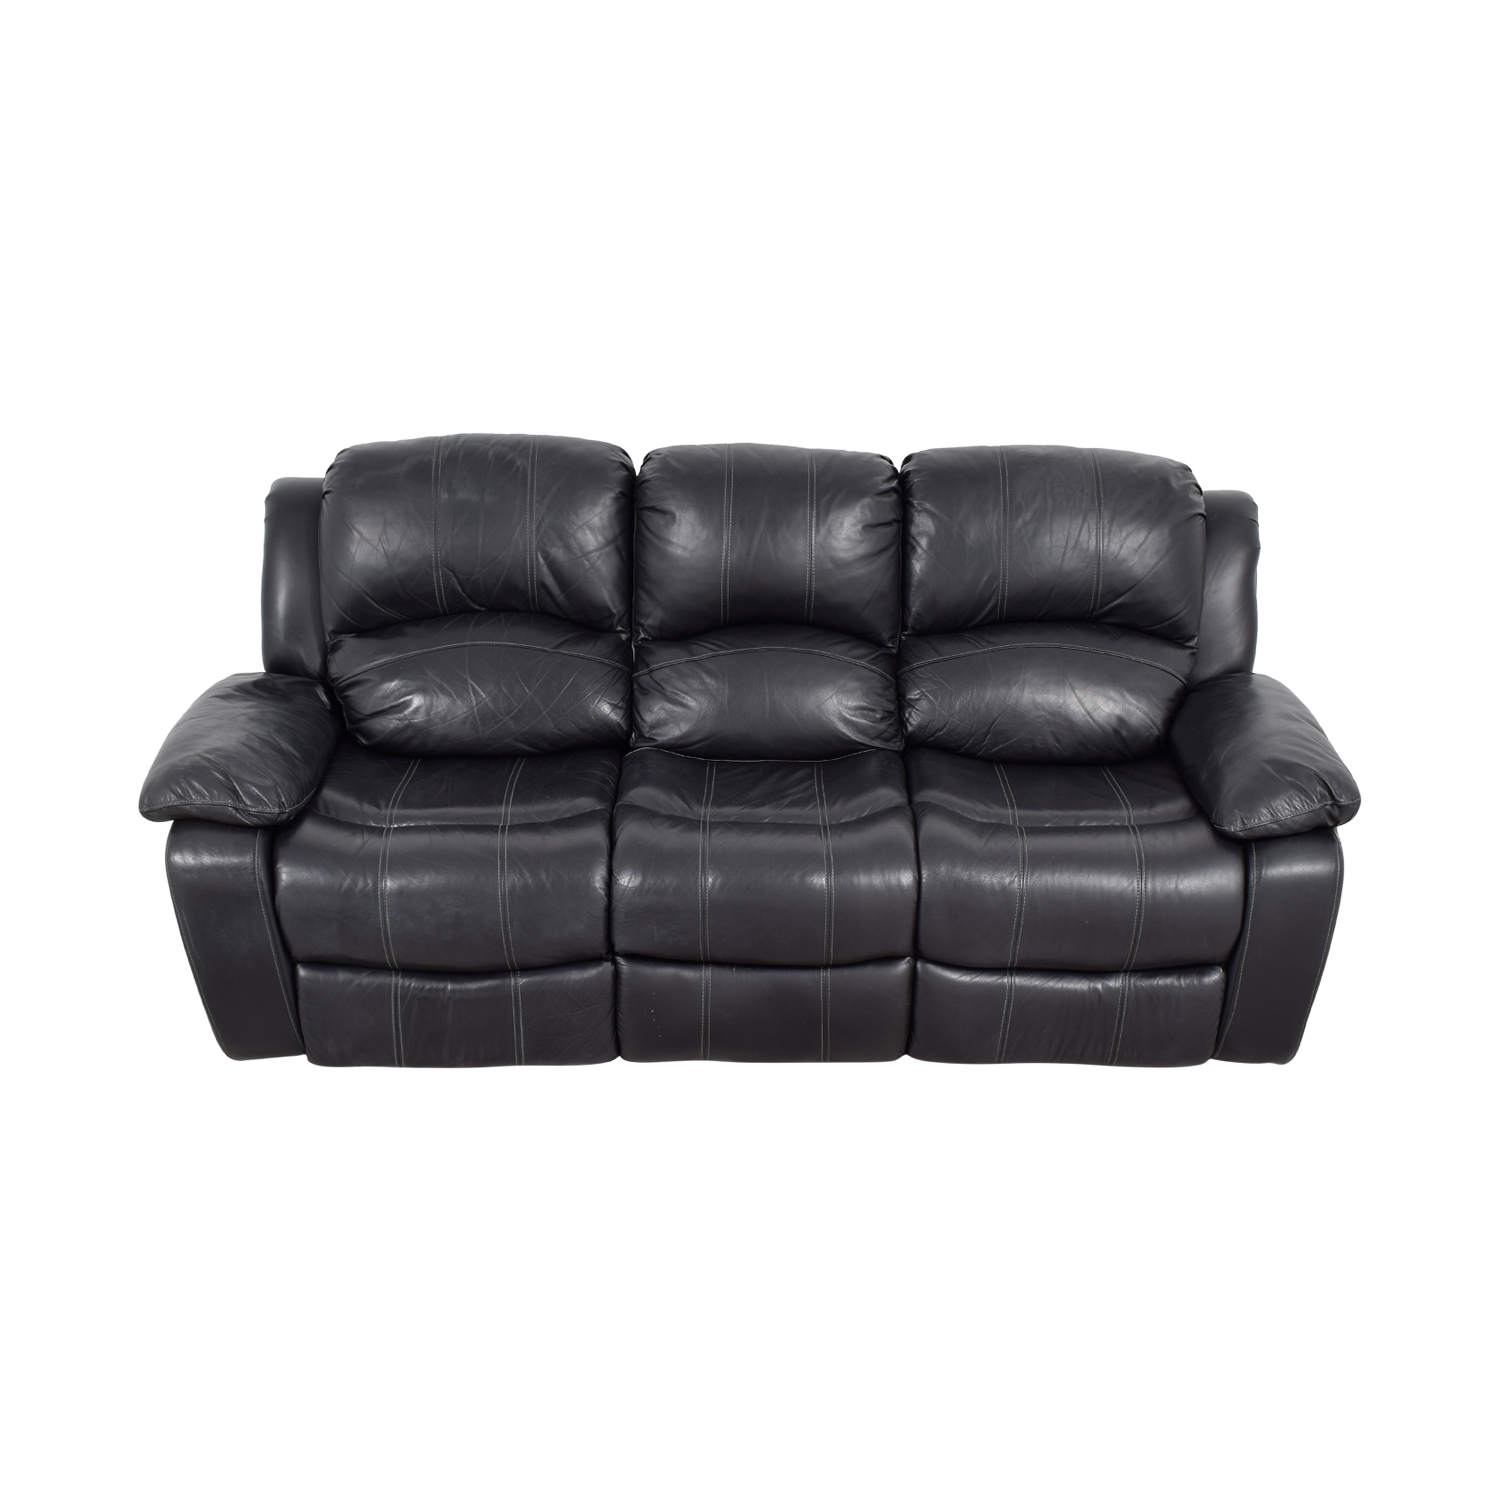 70% OFF - Black Leather Reclining Sofa / Sofas